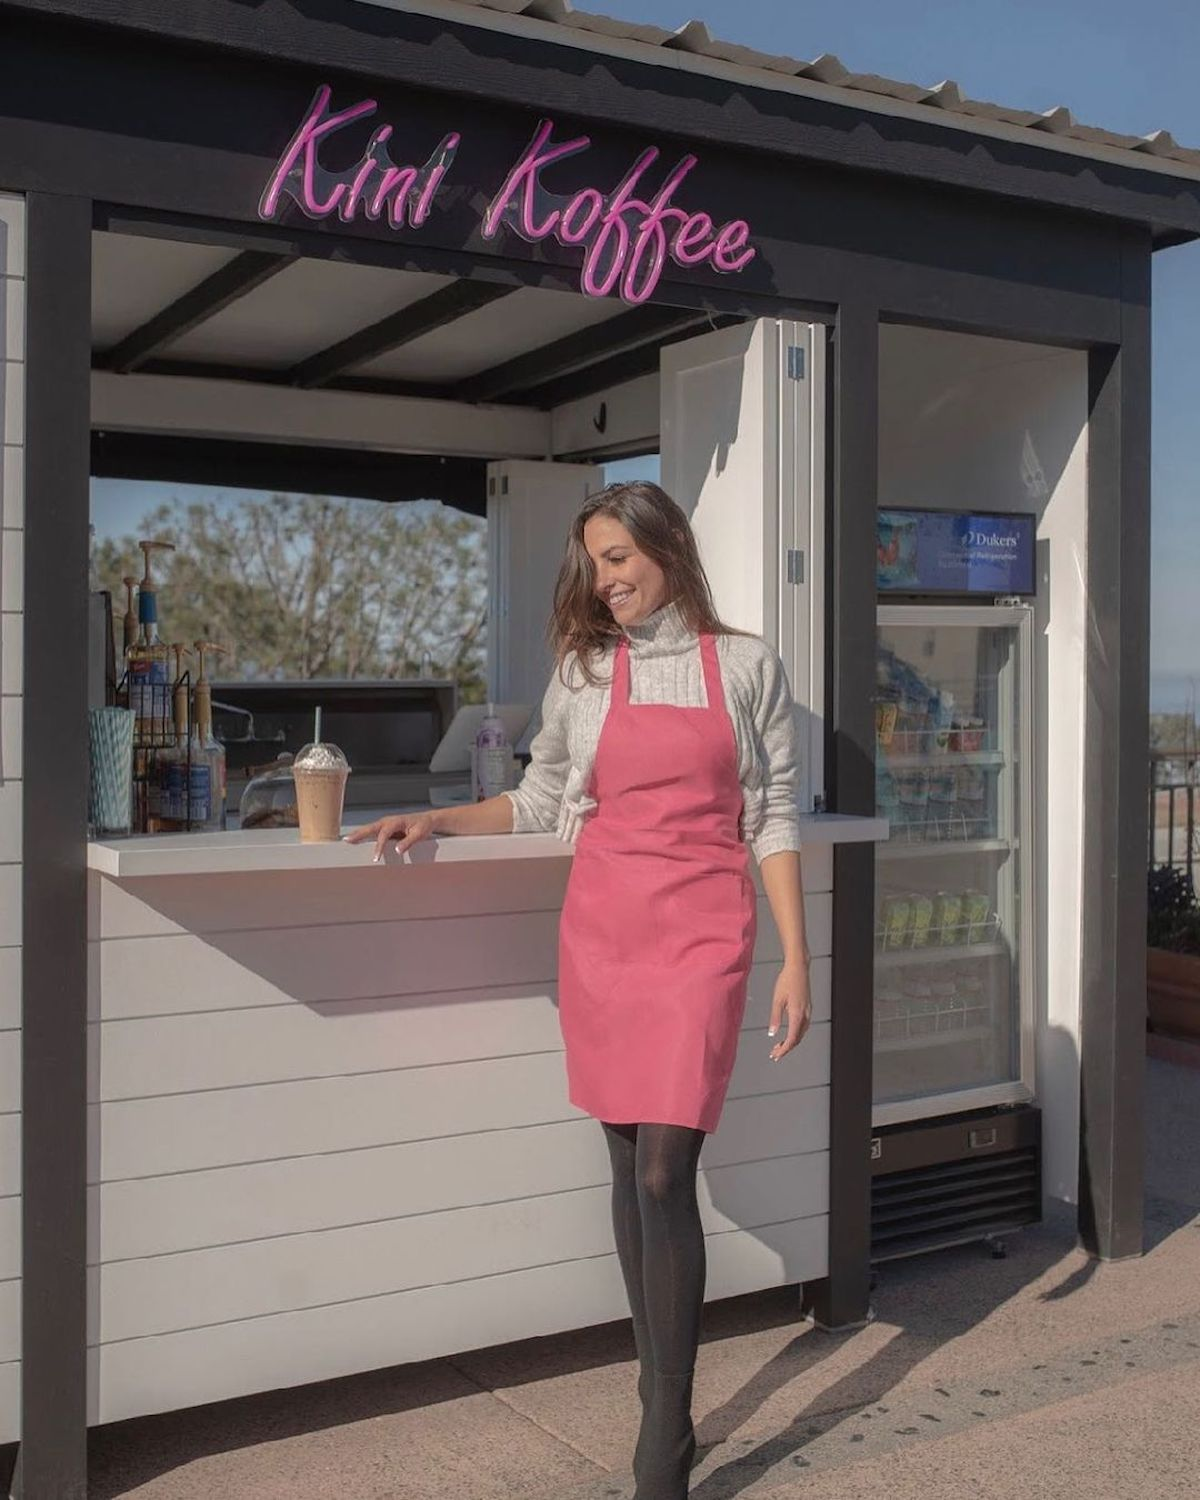 Kini Koffee's Second Location Picking Up Steam